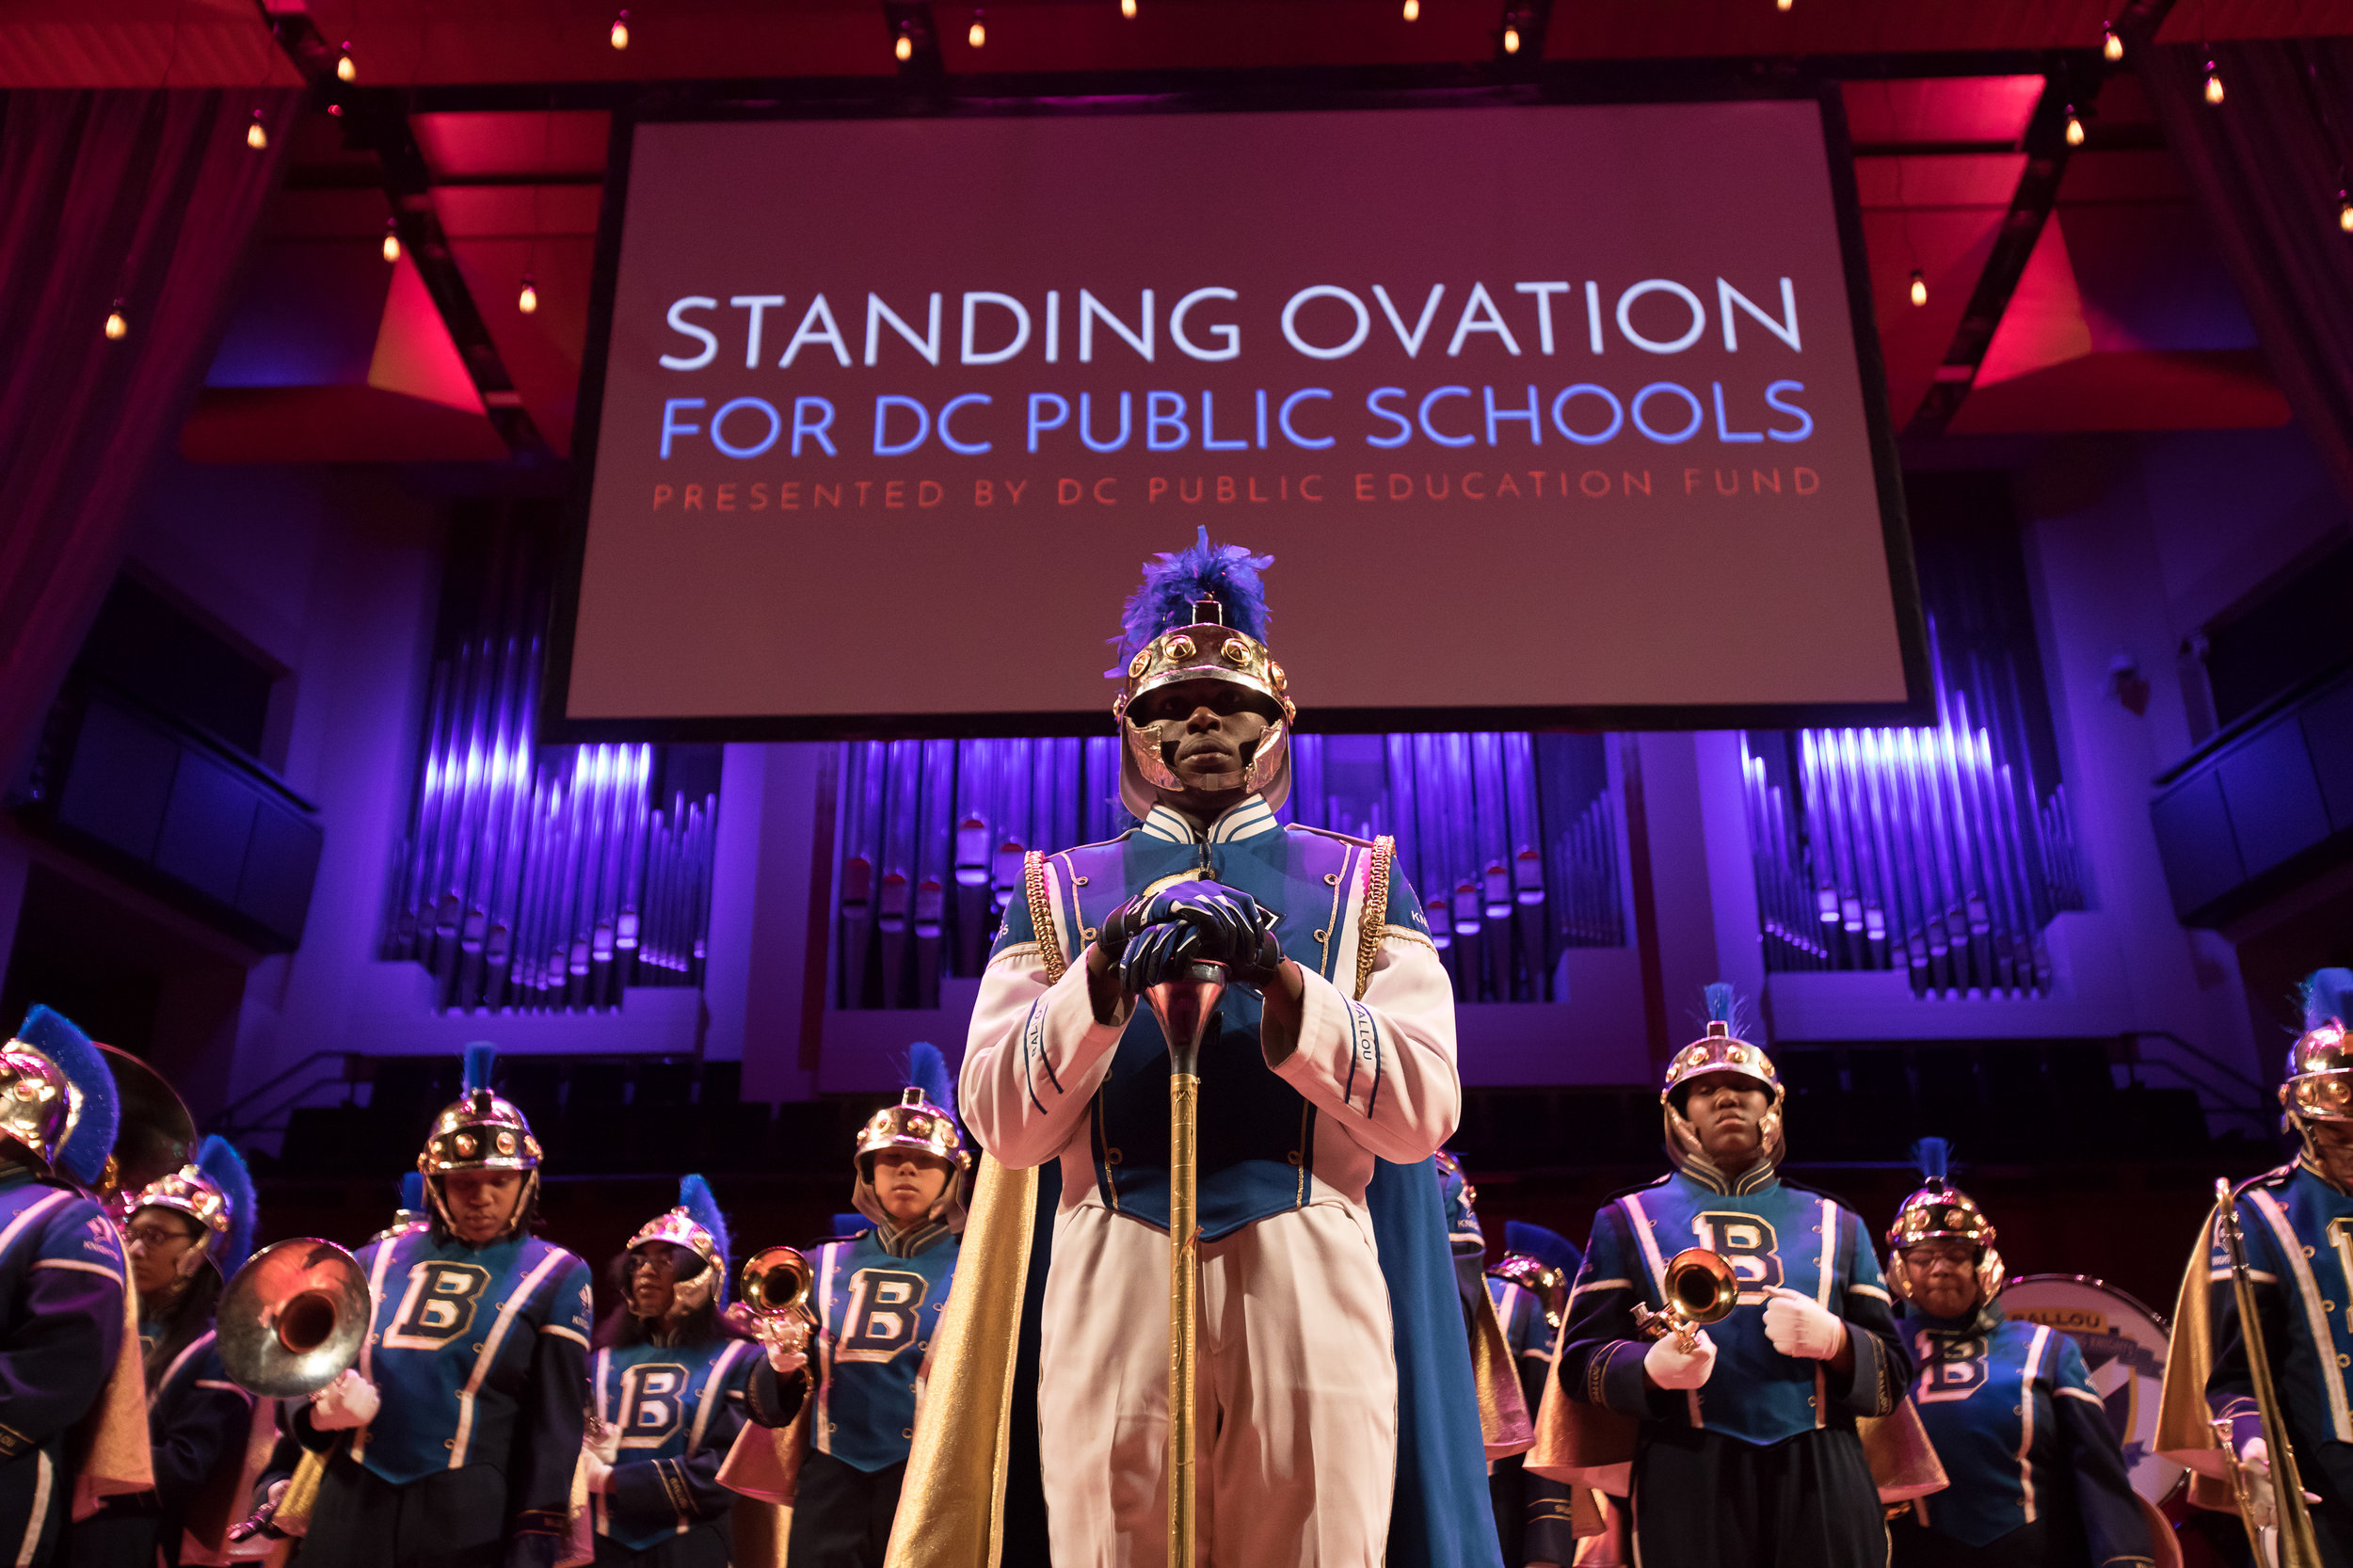 4. Celebrate at Standing Ovation! - At Standing Ovation 2018, the entire DC community will come together to celebrate the incredible teachers, school staff, leaders, and school communities at DCPS. Eight Excellence Award winners and 21 Rubenstein Award winners will be honored with cash prizes totaling $230,000 thanks to the generosity of Alice and David M. Rubenstein. Stay tuned for more information!